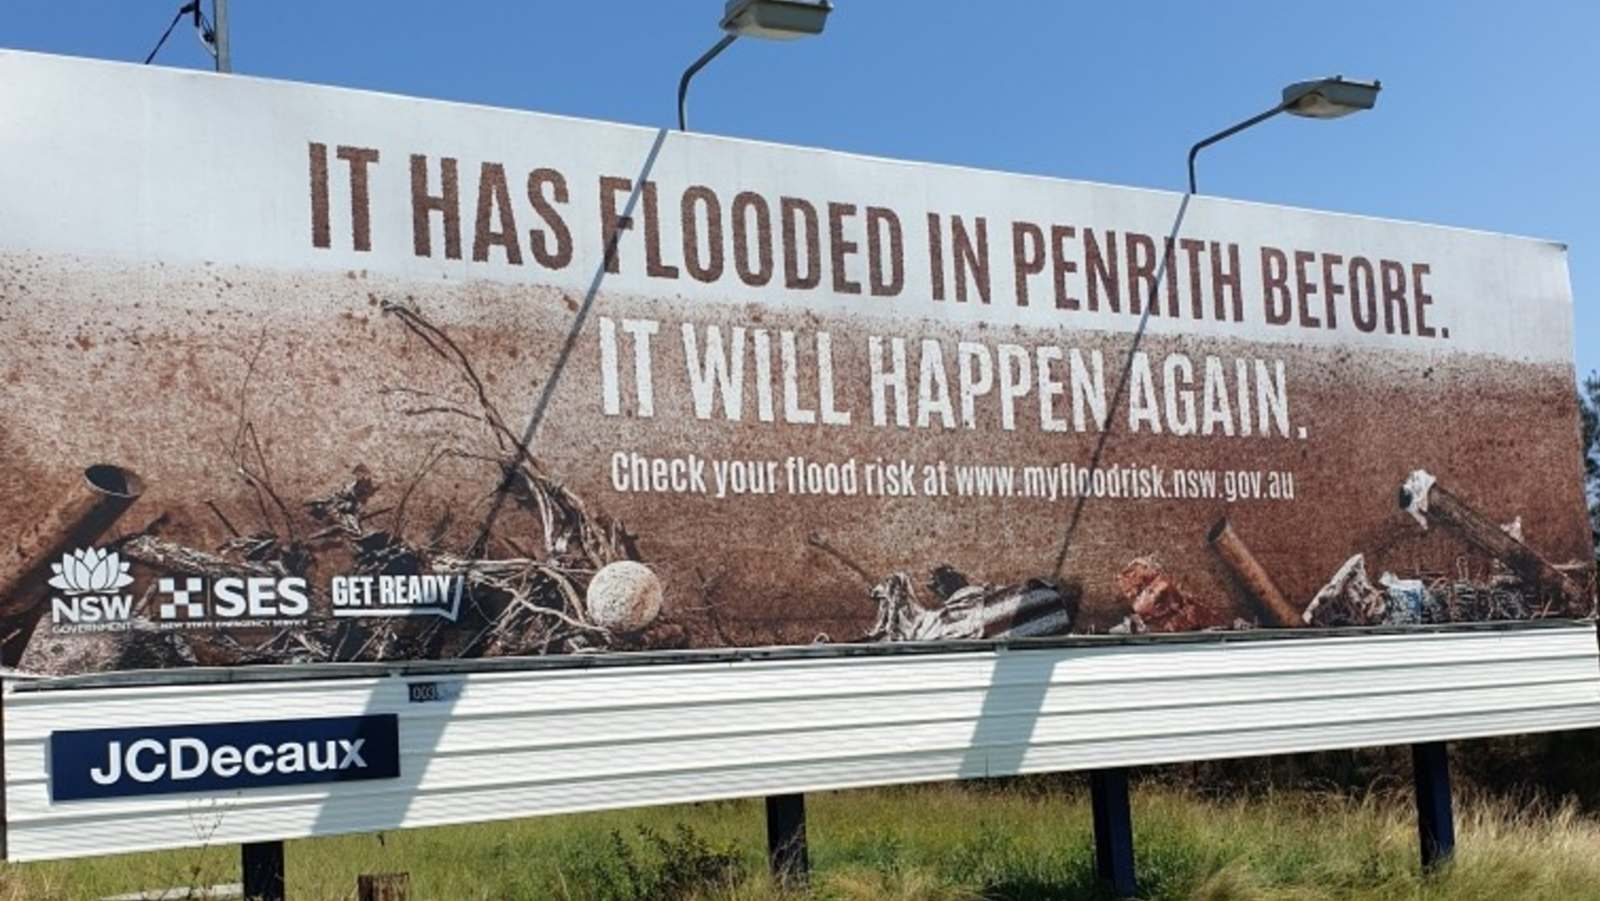 'Noah built the ark before the flood': Minister defends campaign amid drought Image